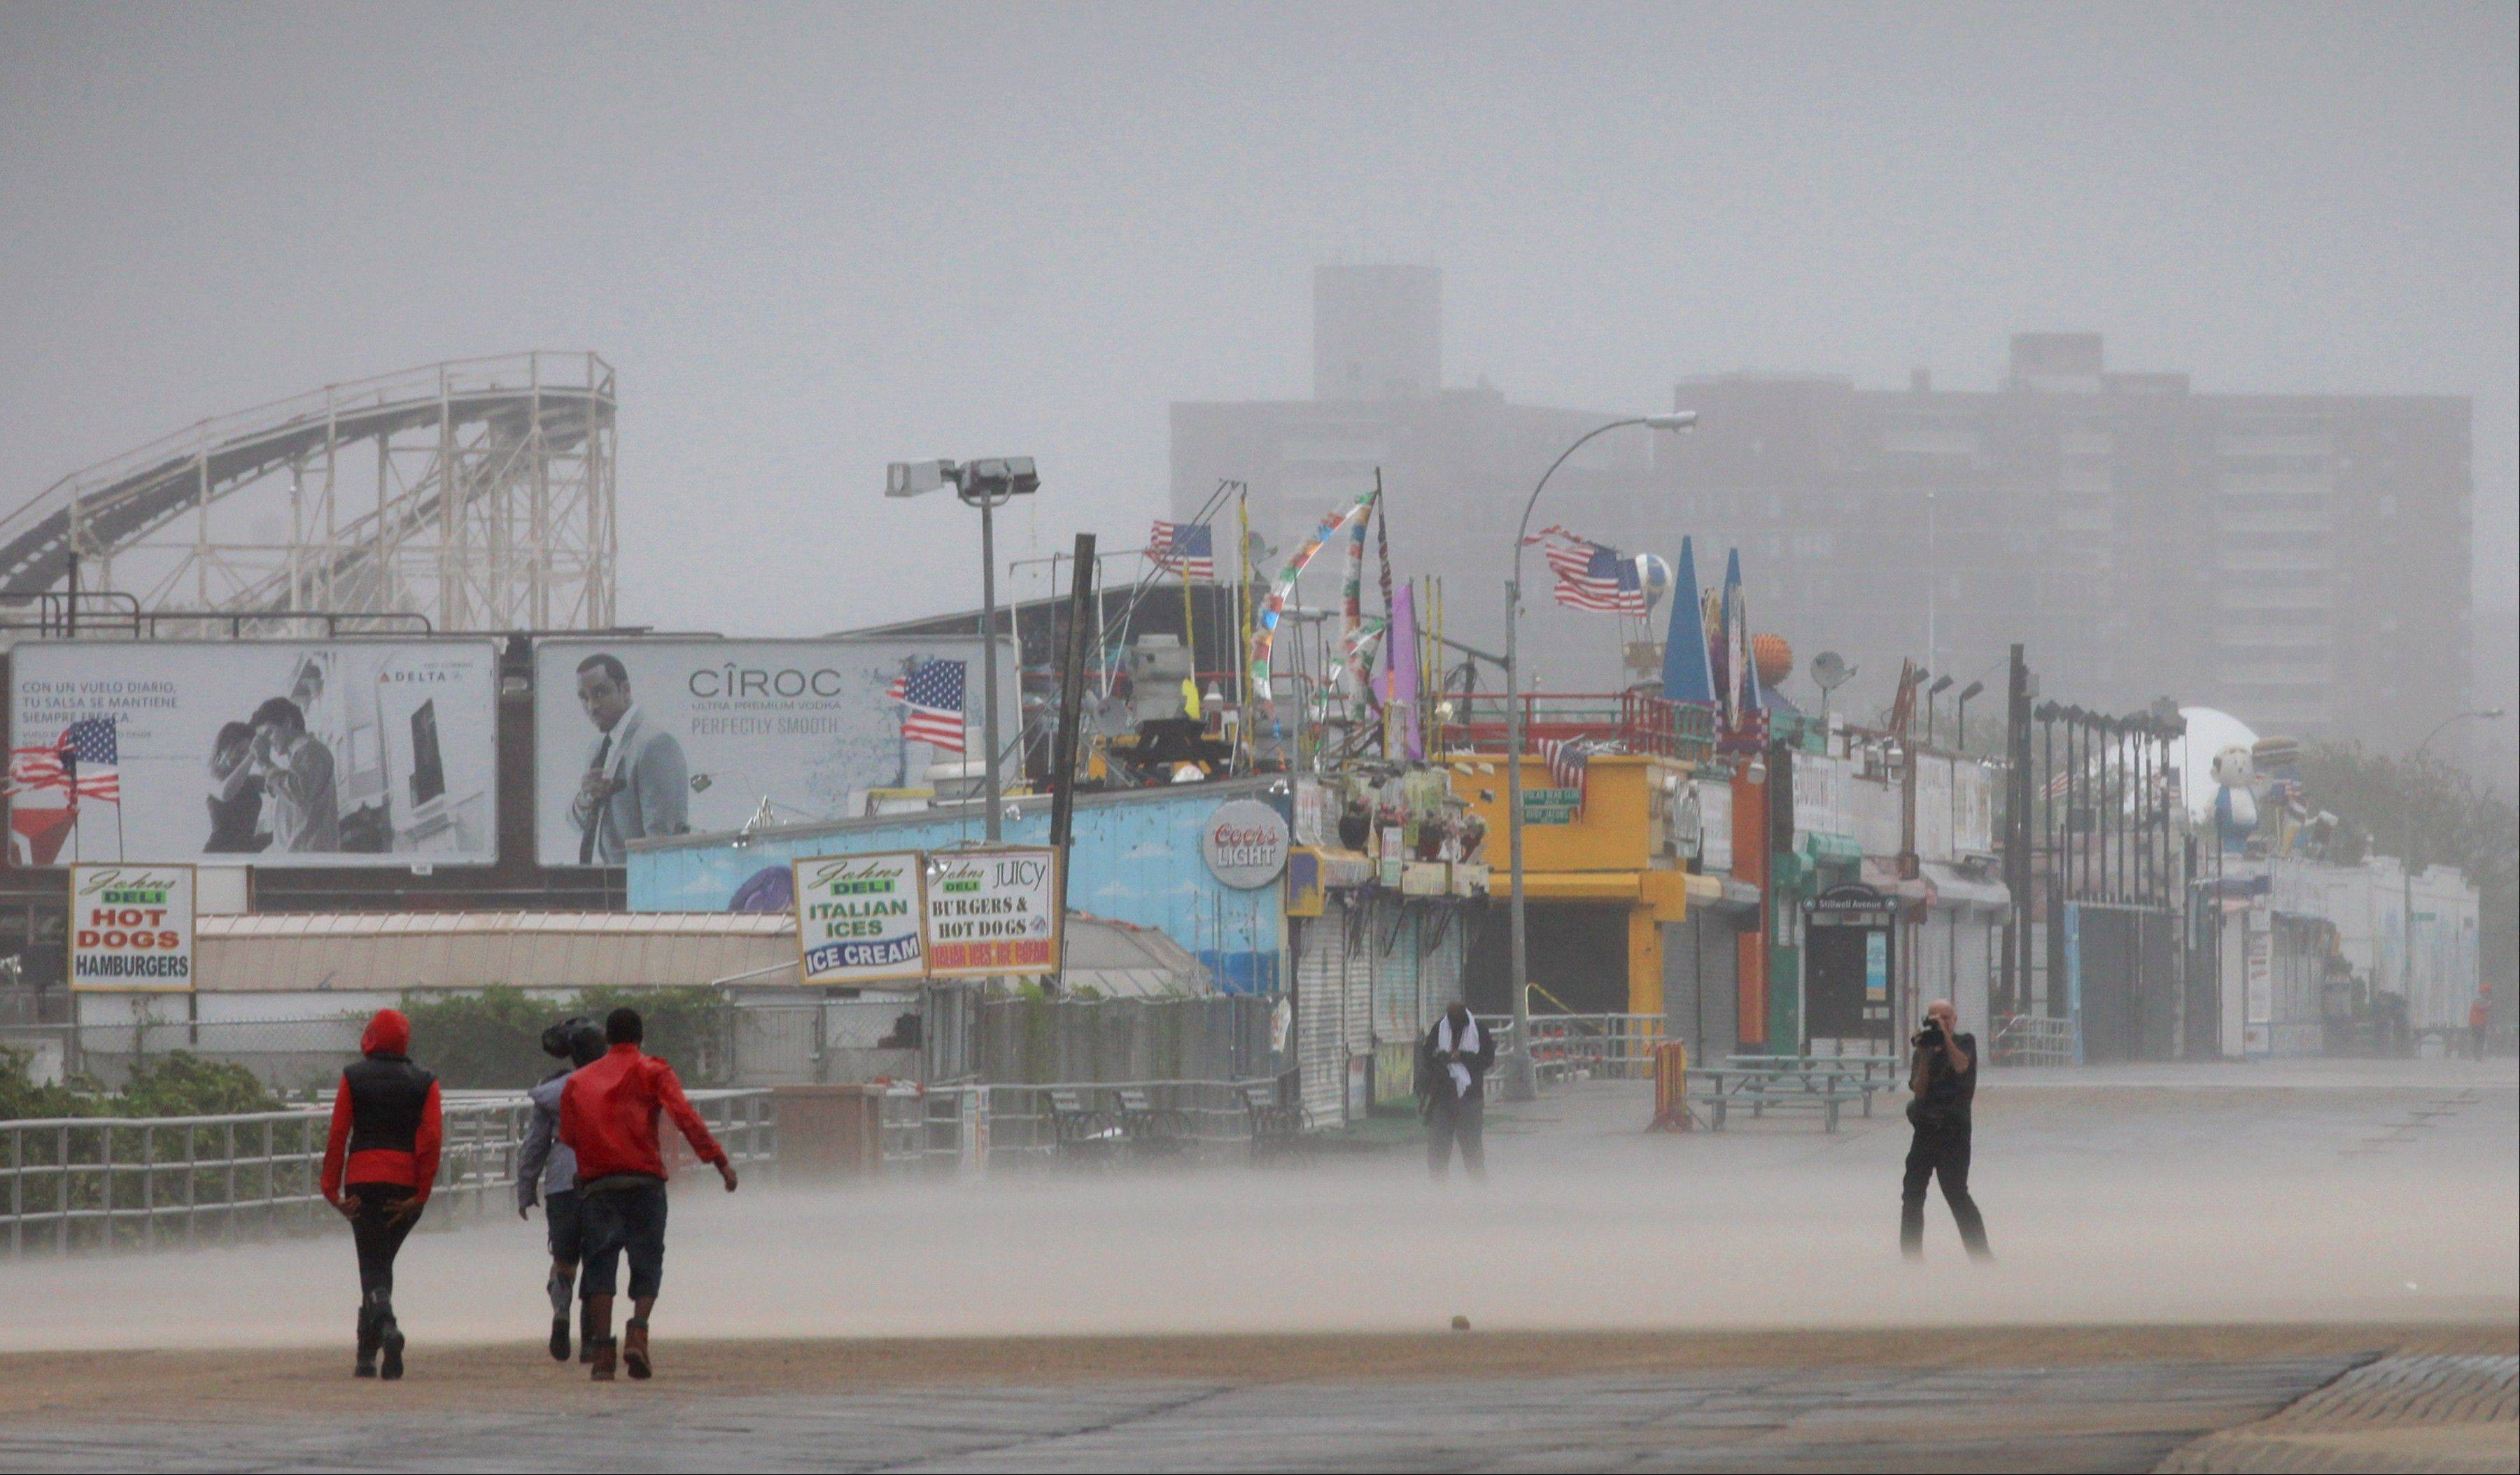 Driving wind and rain lash the Coney Island boardwalk in New York as Irene came closer to the area Sunday, Aug. 28 2011. Irene hit Coney Island with 65-mph winds, making it now a tropical storm.